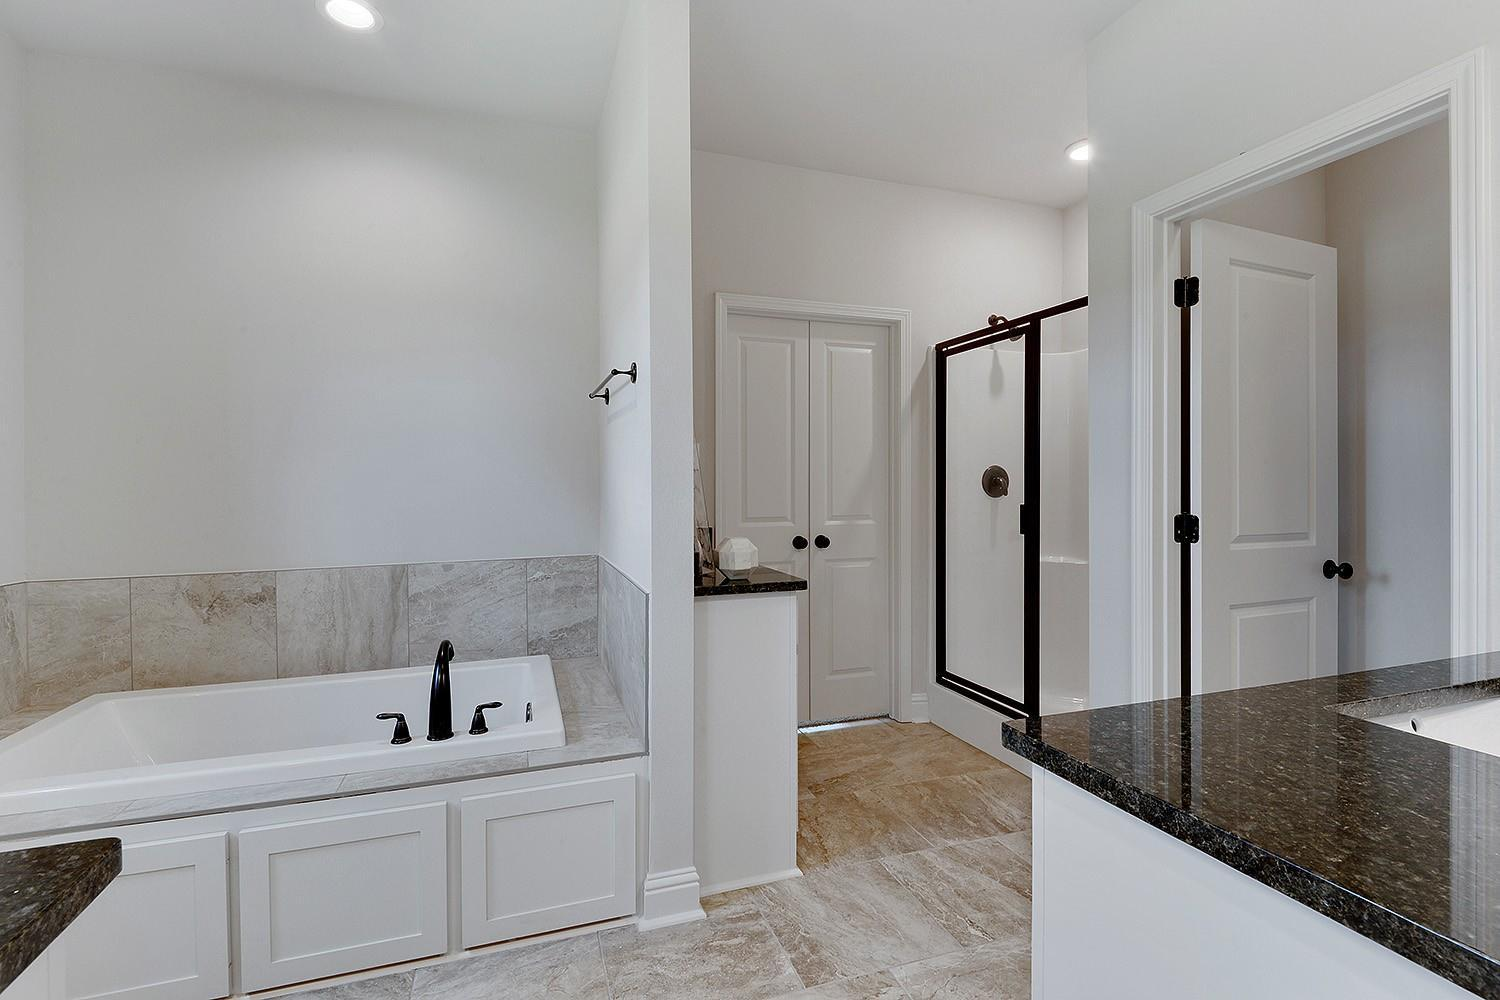 Bathroom featured in the Savoy II By Willie & Willie  in Baton Rouge, LA